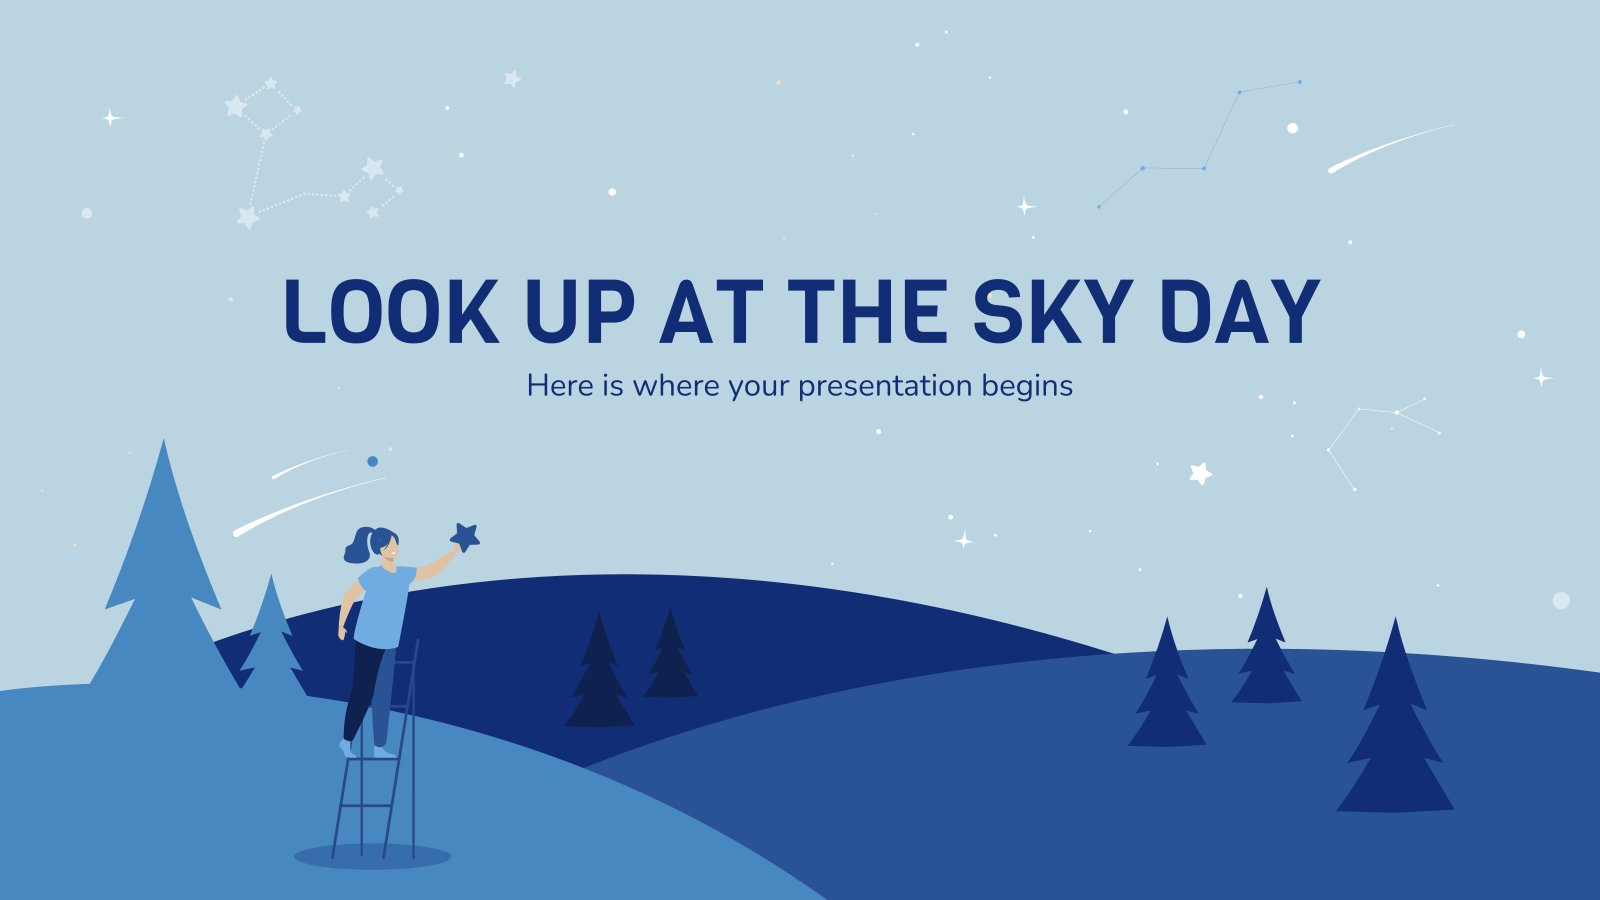 Look Up at the Sky Day presentation template